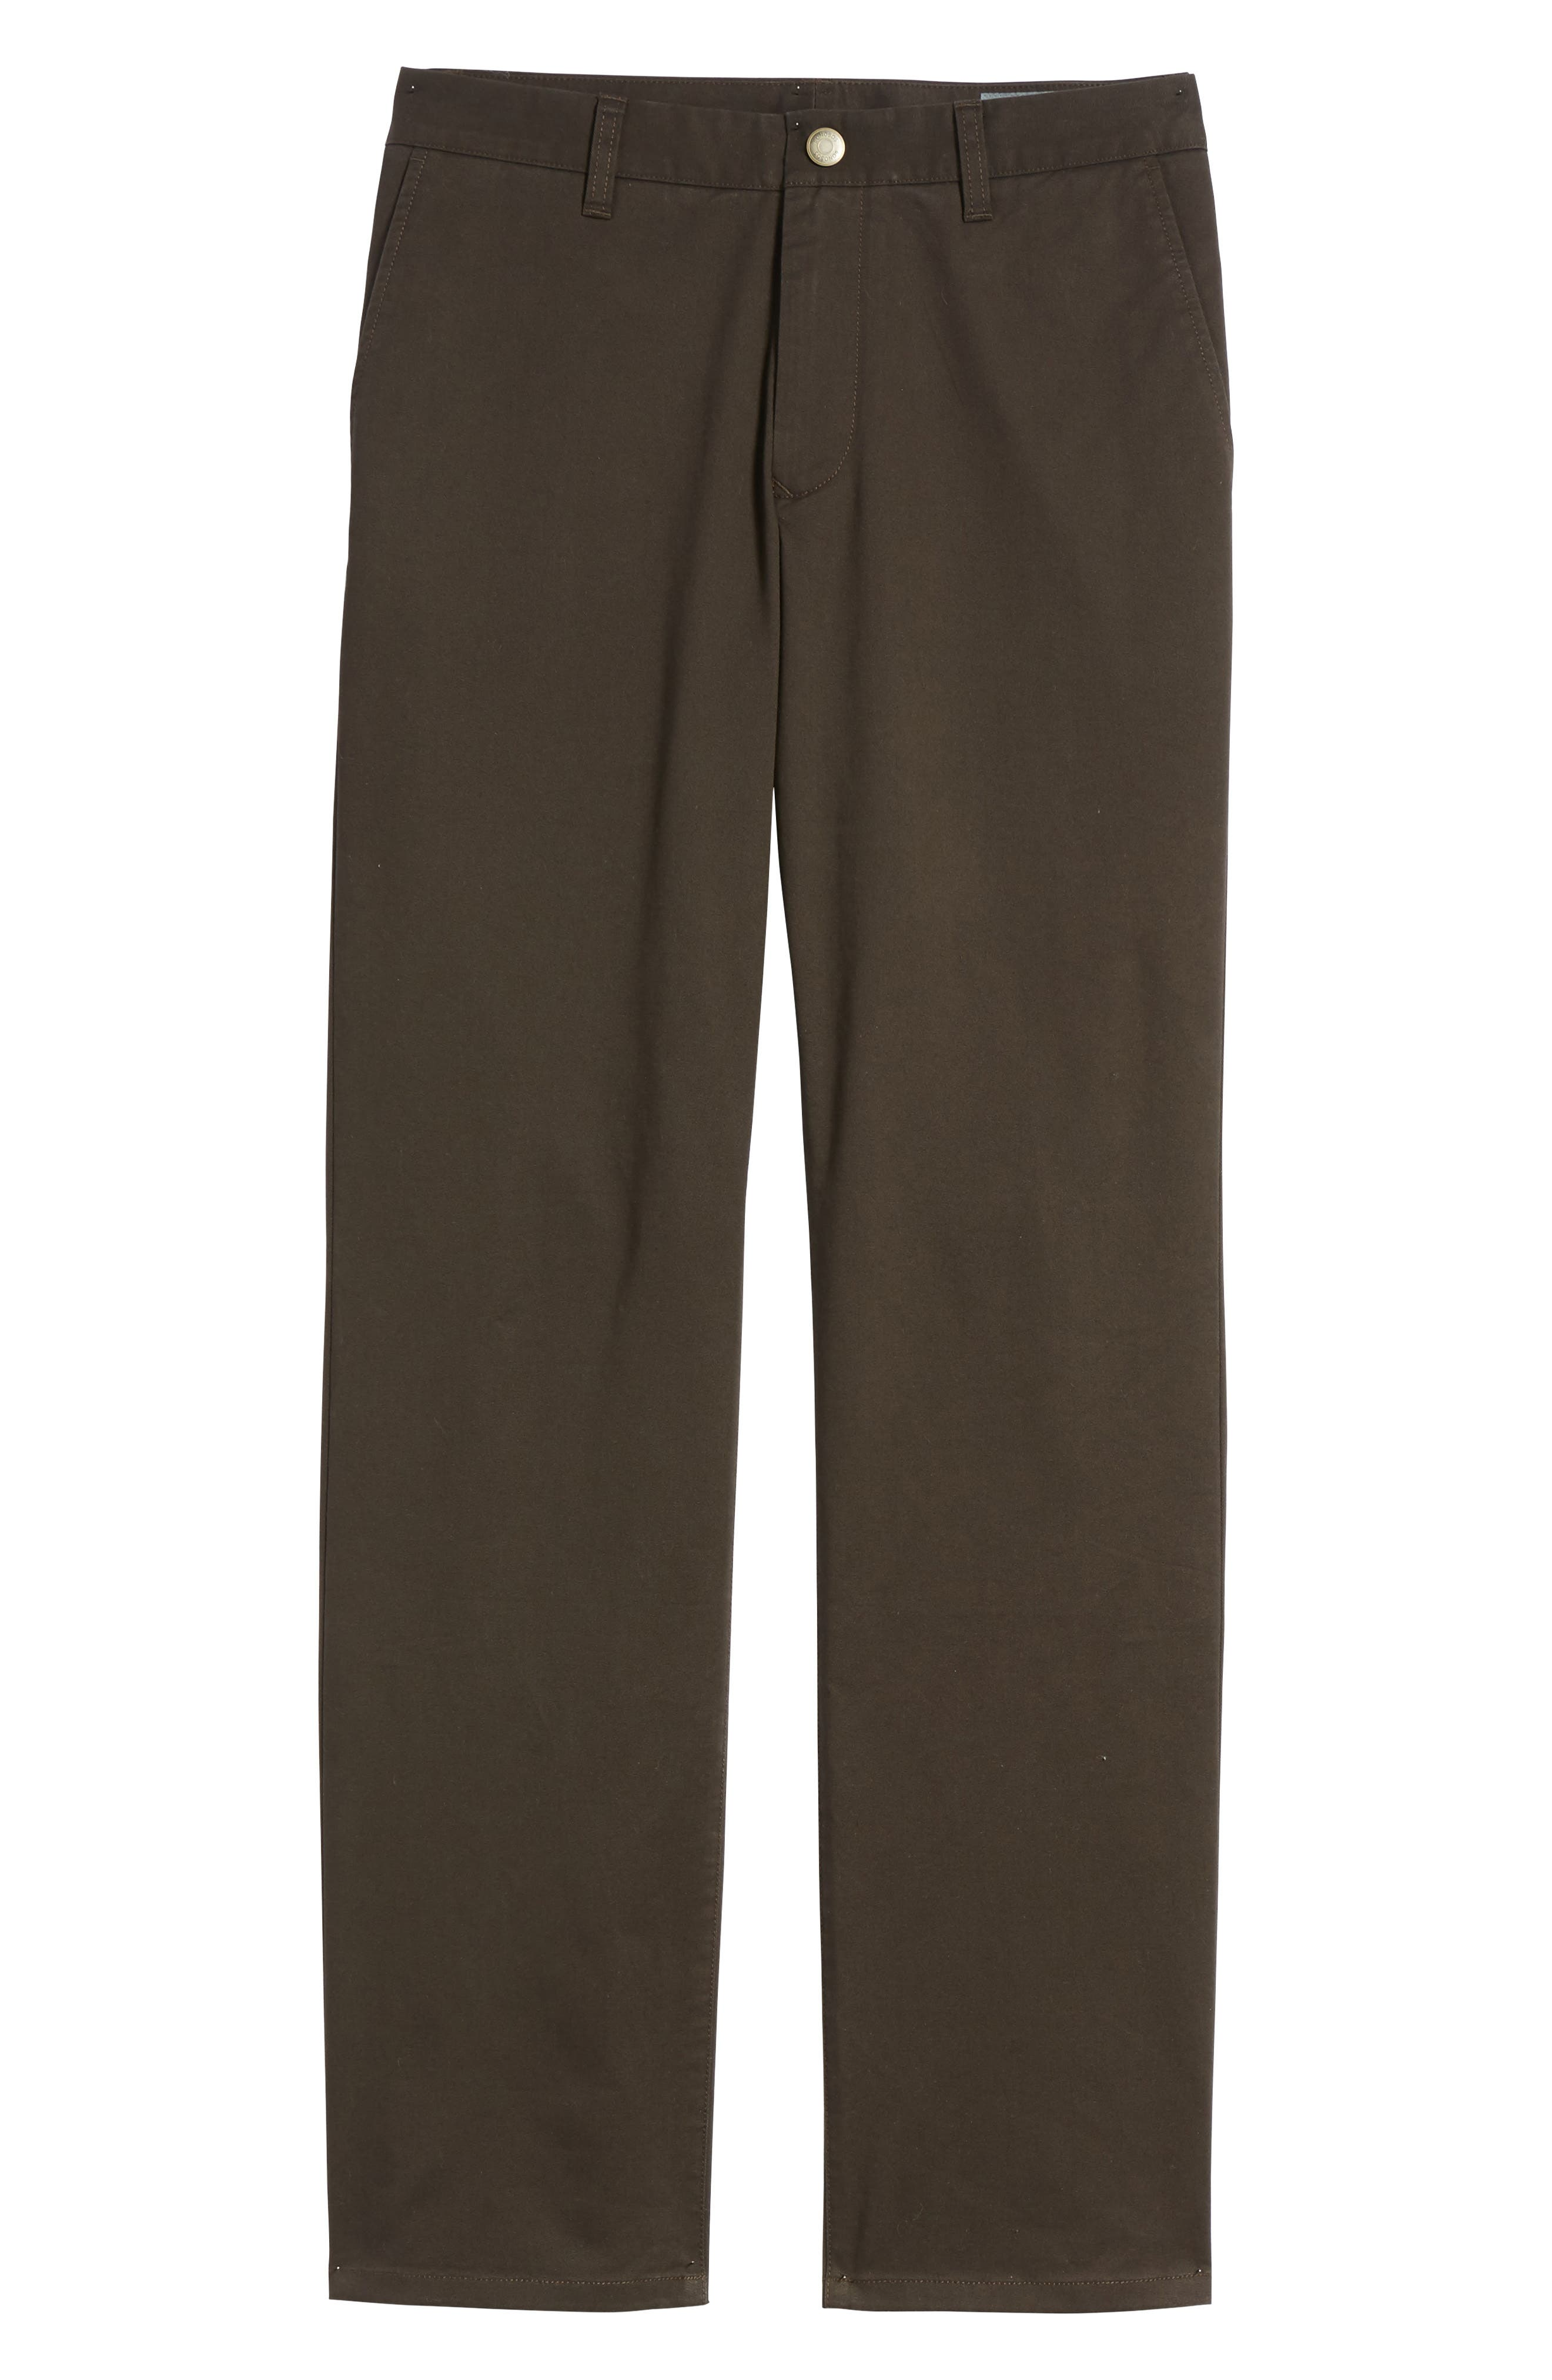 Straight Leg Stretch Washed Chinos,                             Alternate thumbnail 6, color,                             Chocolate Ale